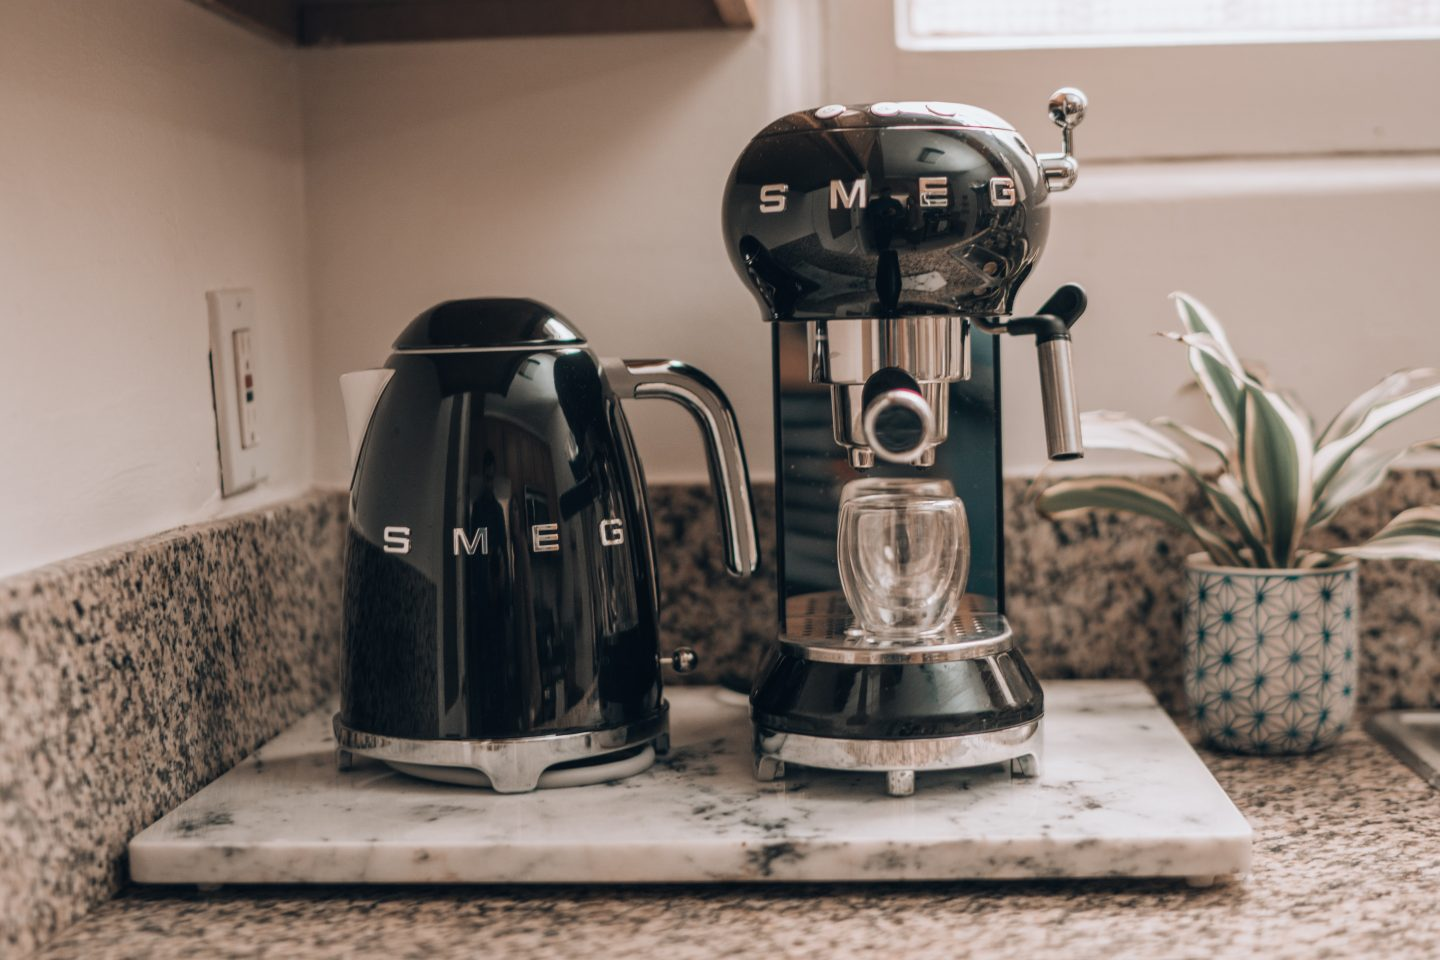 bed bath and beyond, smeg tea kettle, smeg espresso machine, what to register for, how to register